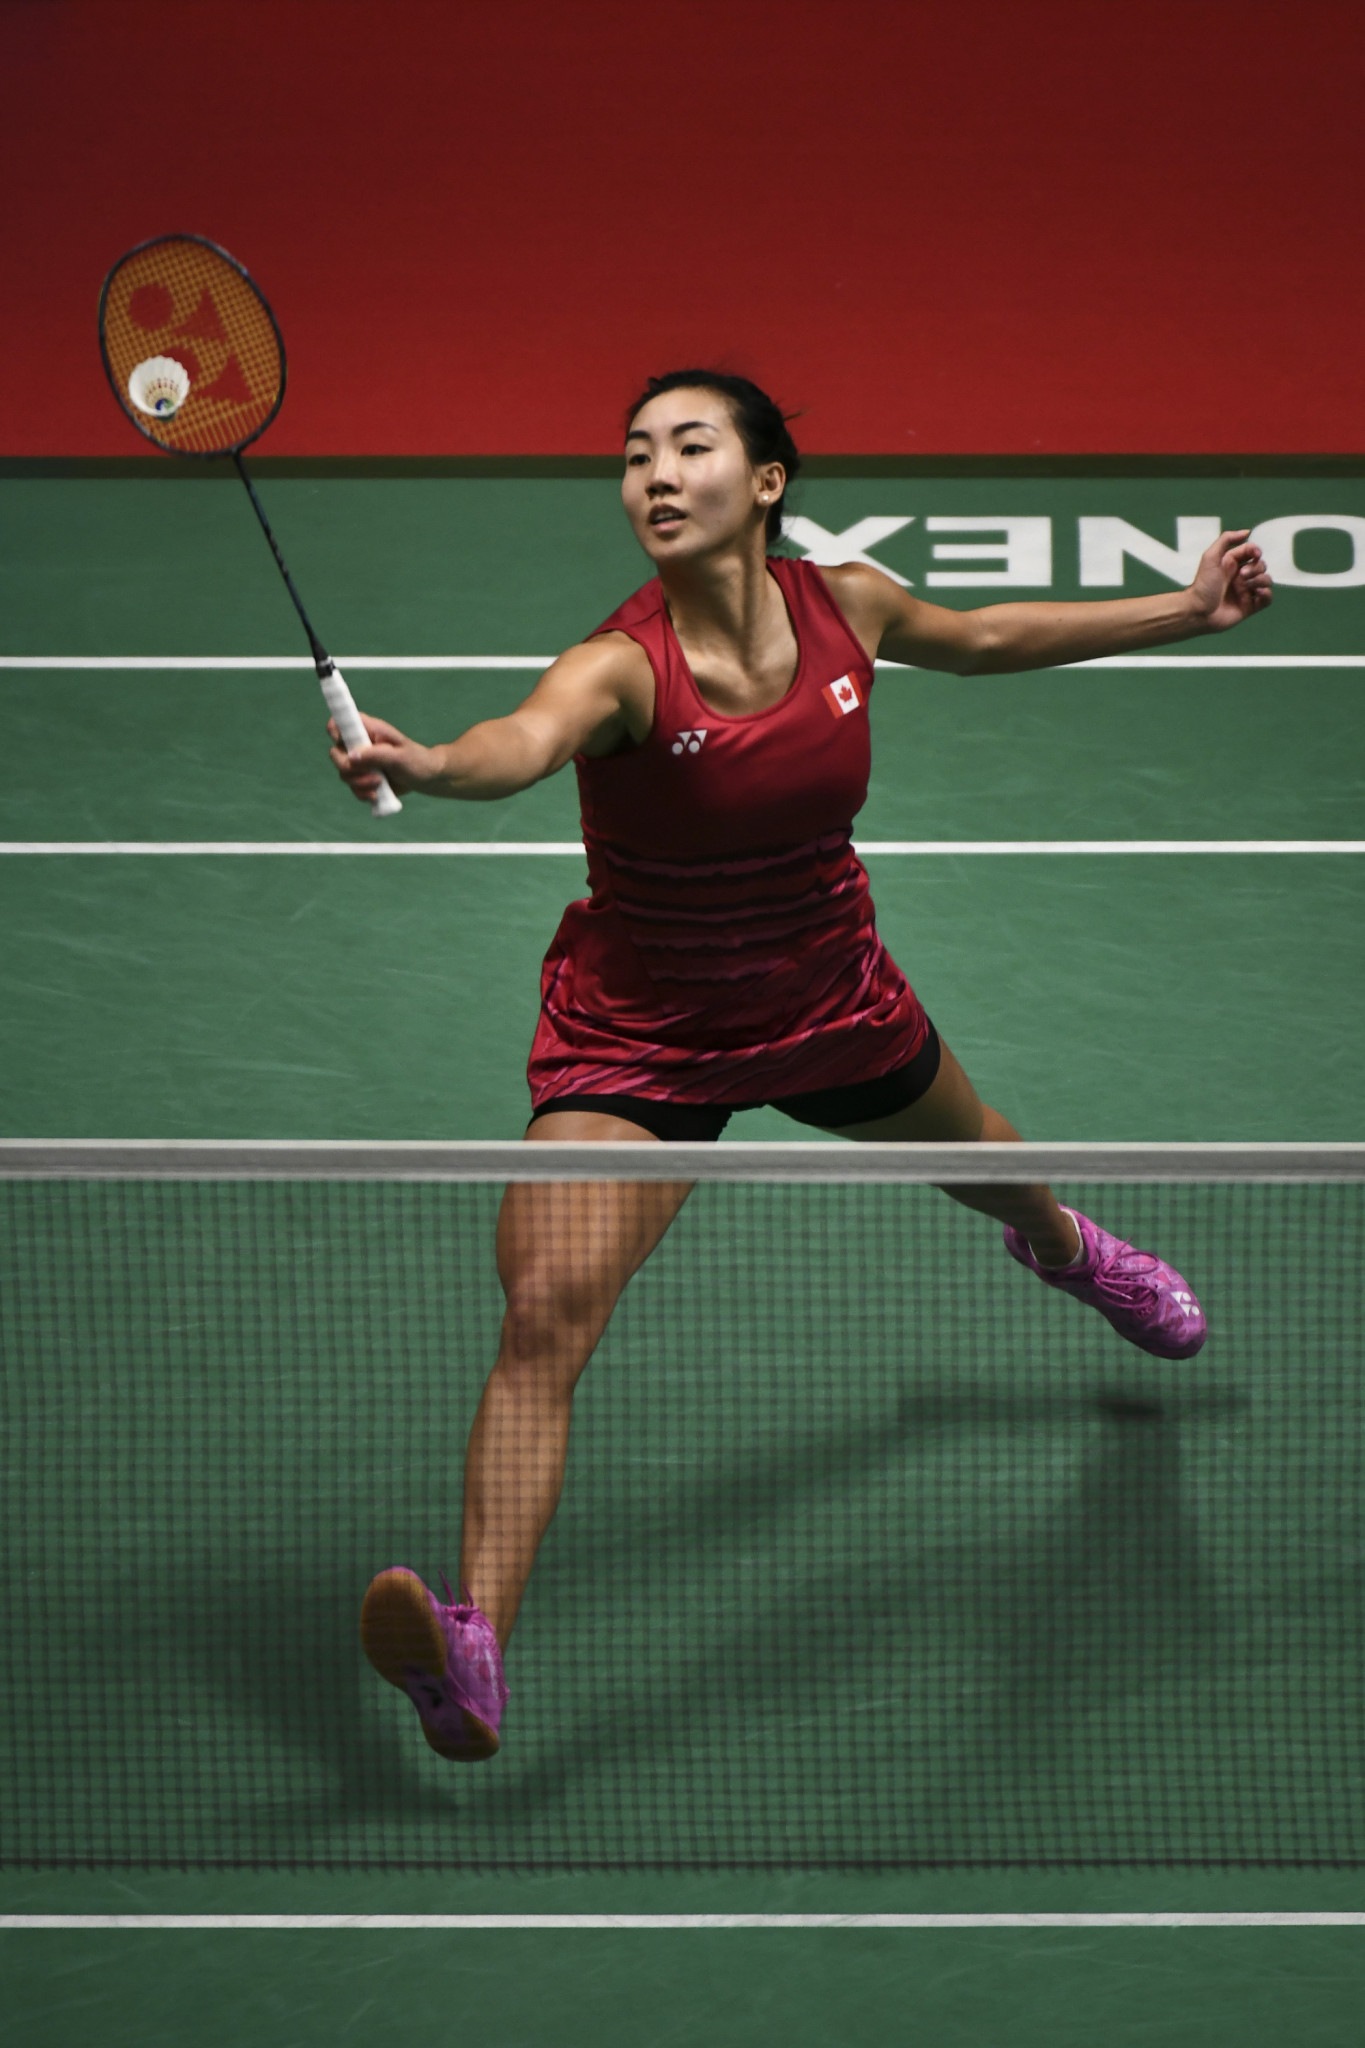 Canada's women's top seed Michelle Li is safely into the next round ©Getty Images